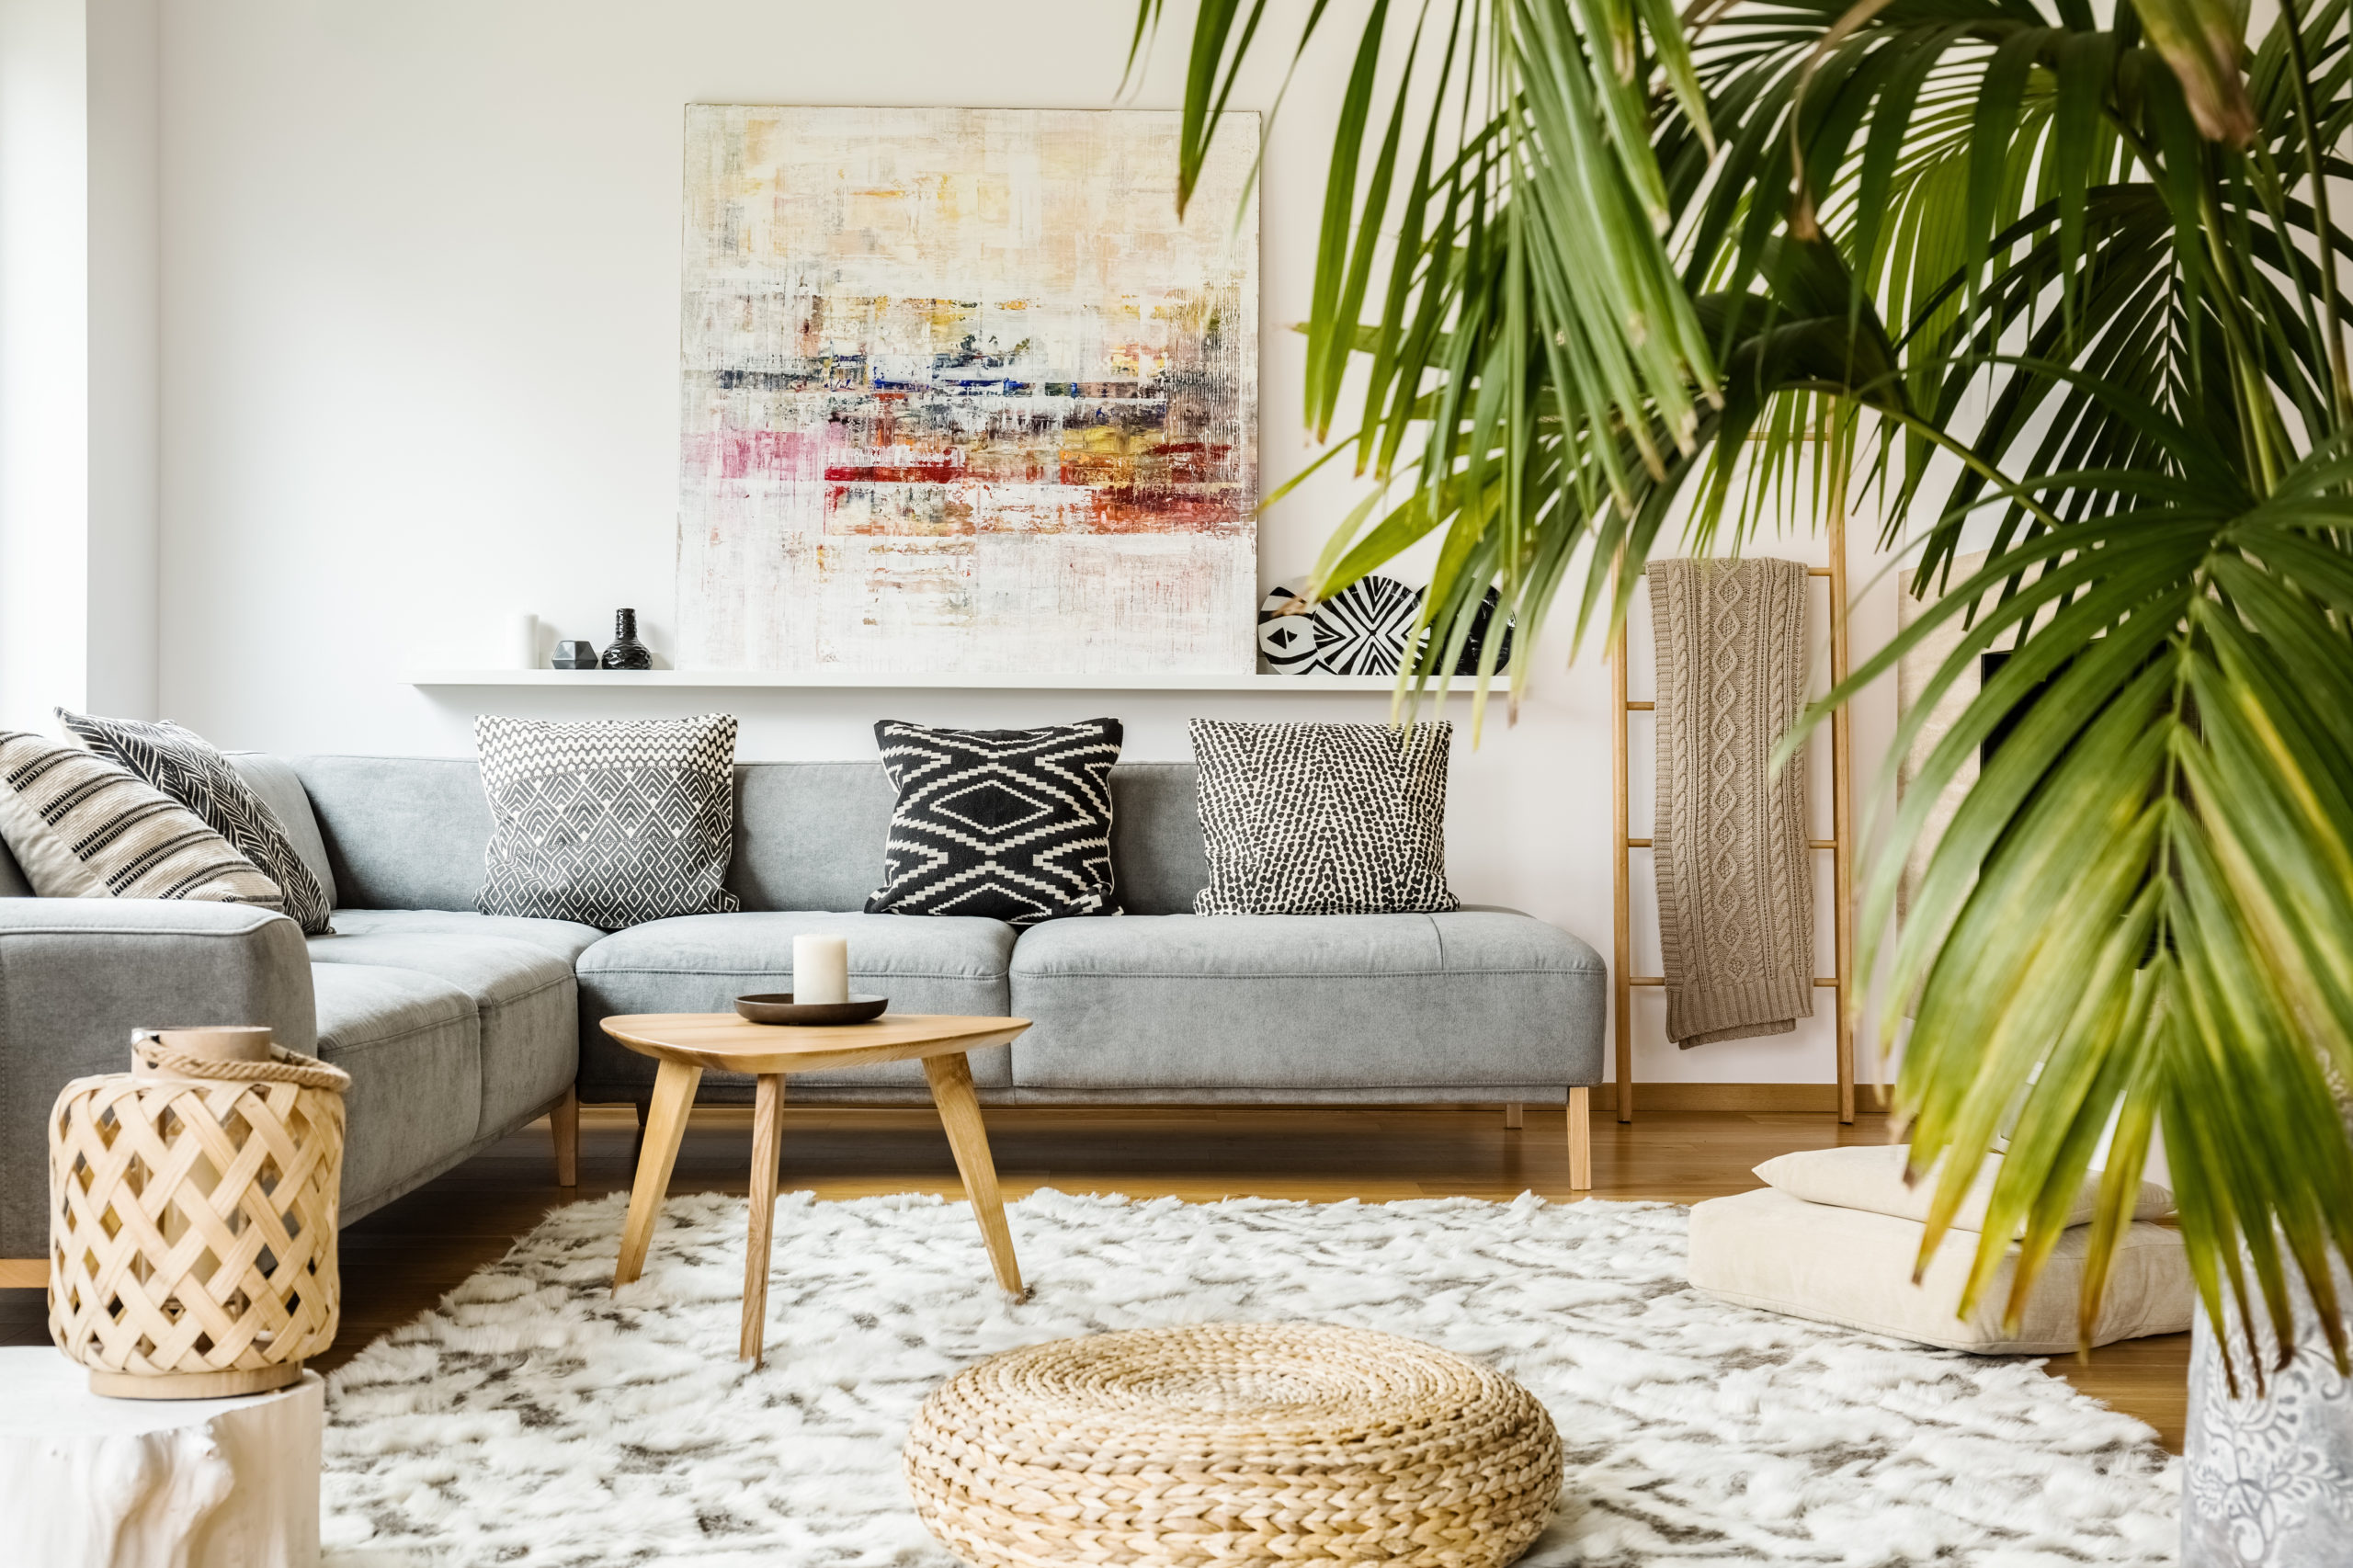 Living room - -Pouf and wooden table in modern living room with painting above grey corner couch